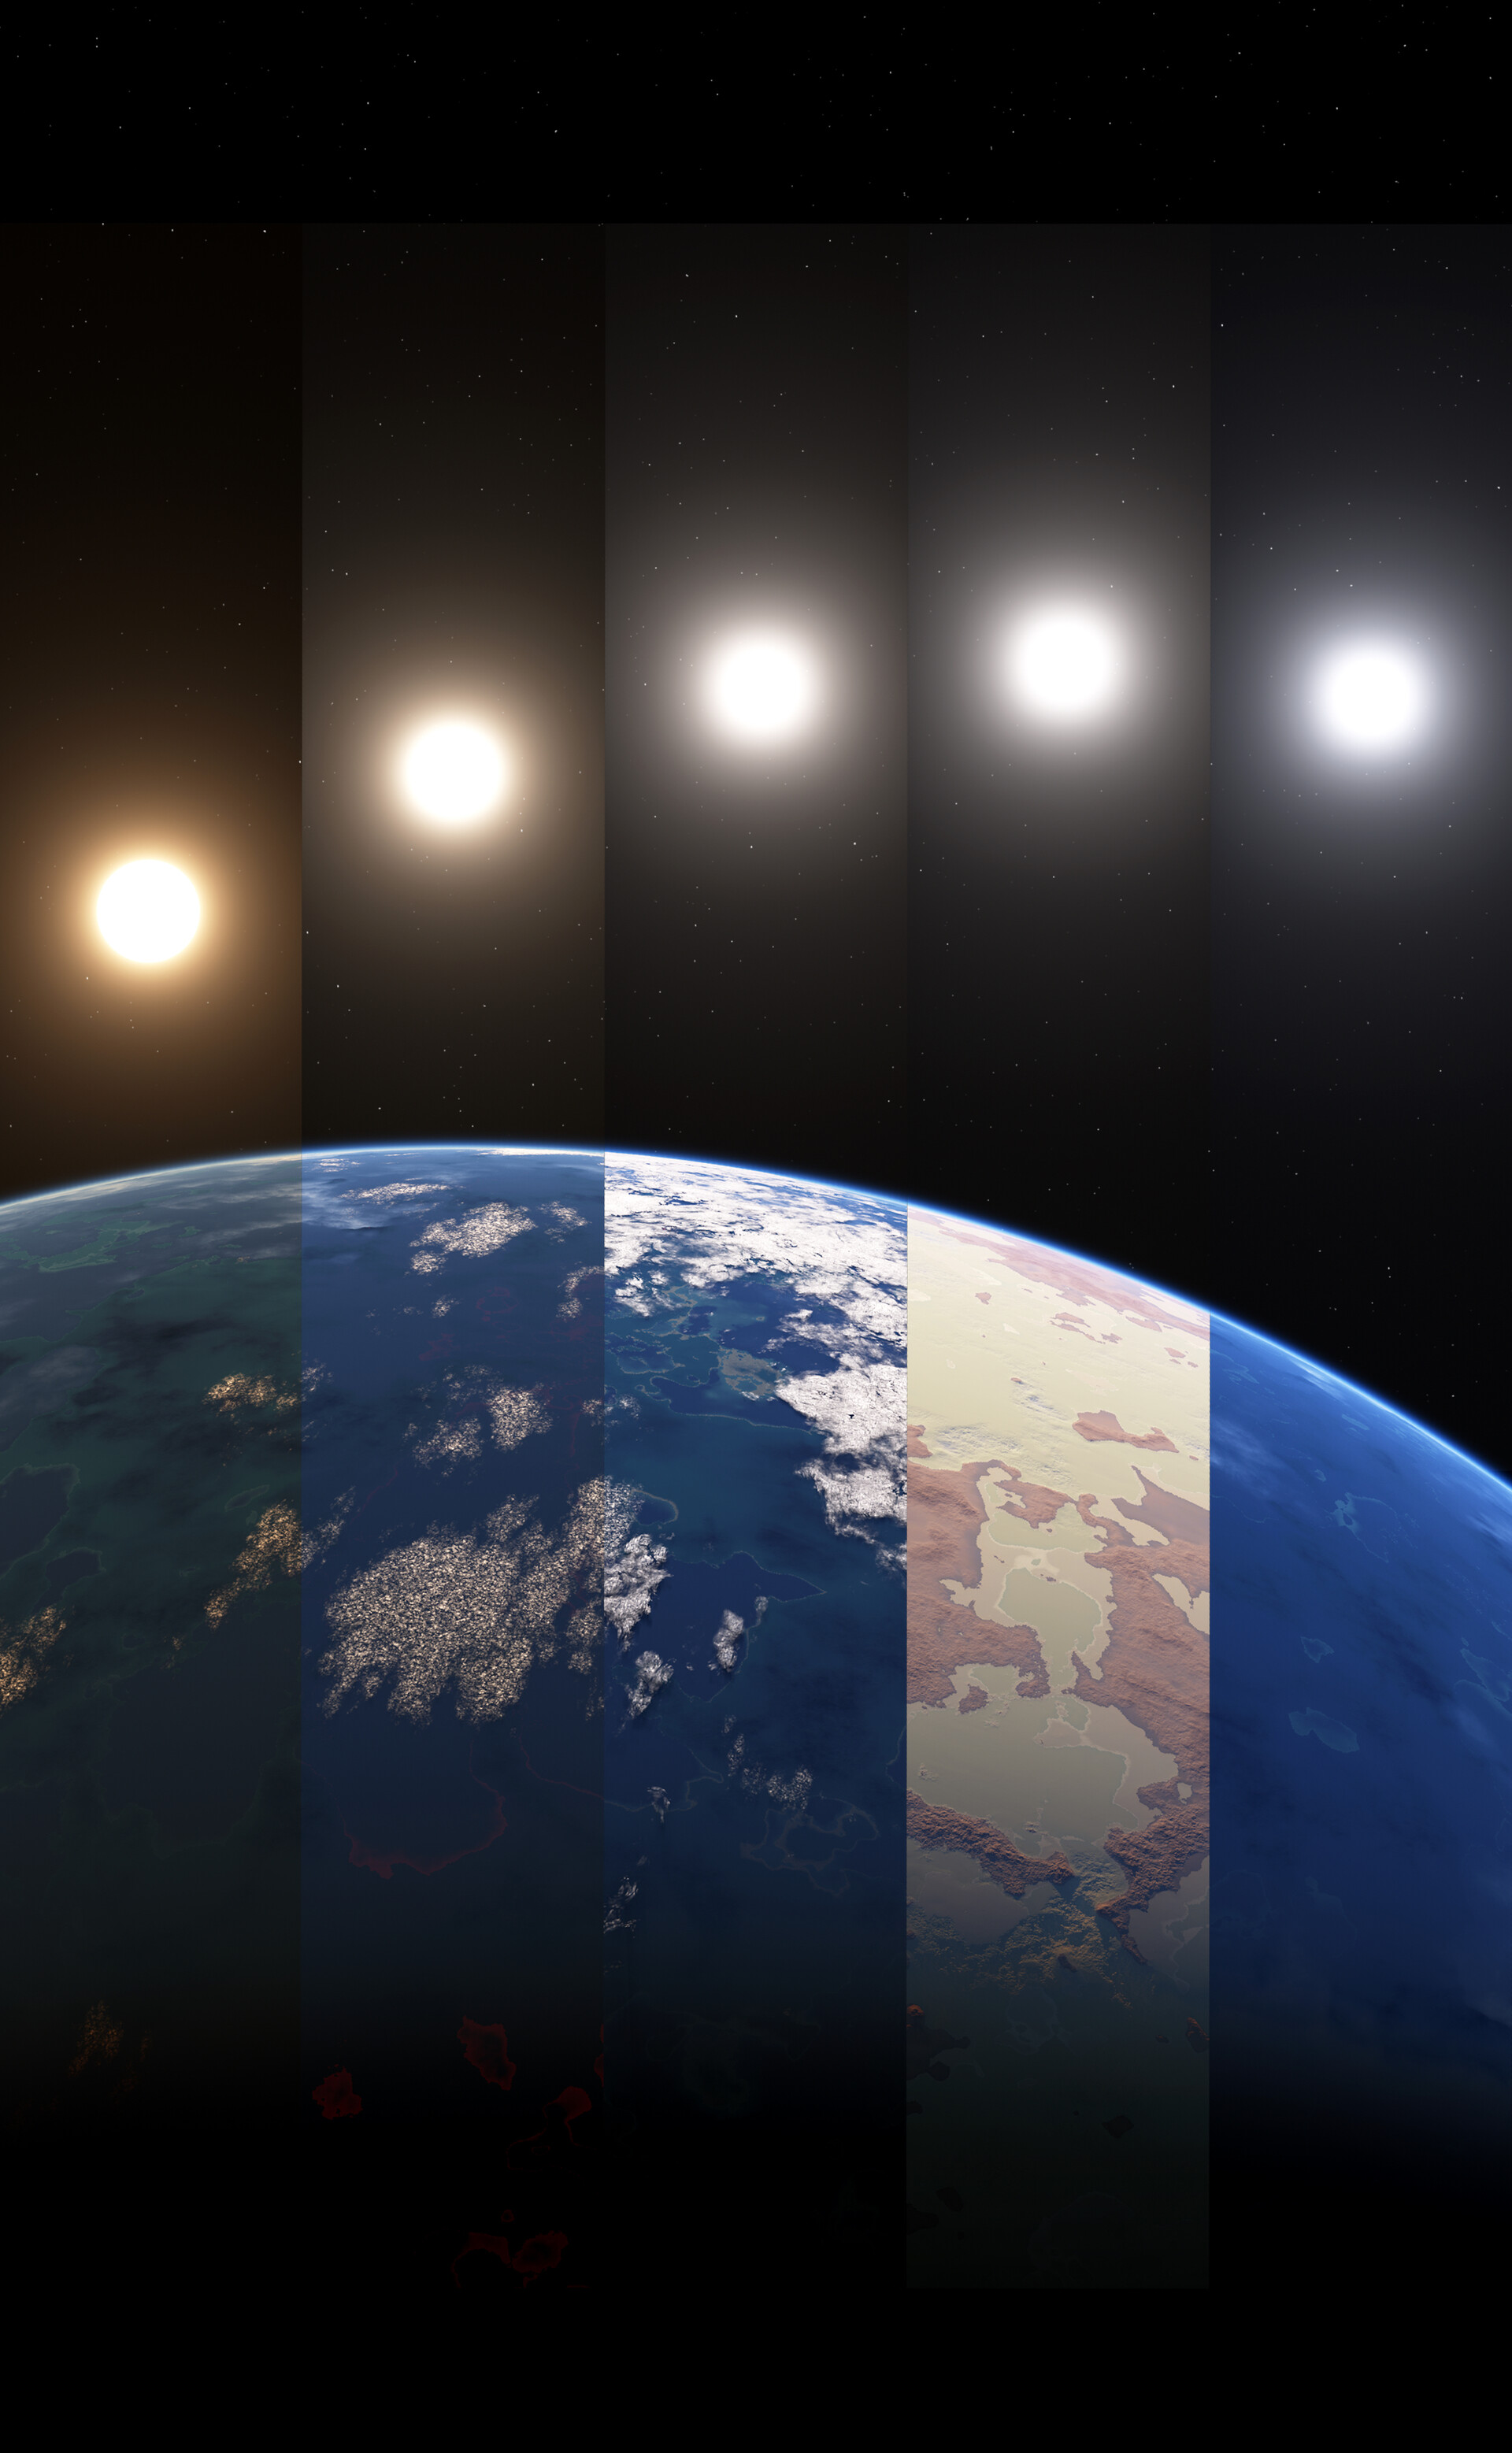 Left to right: Forest, Basalt, Earth-like, Desert, and Ocean. Each gets progressively warmer from left to right due to changing star type.